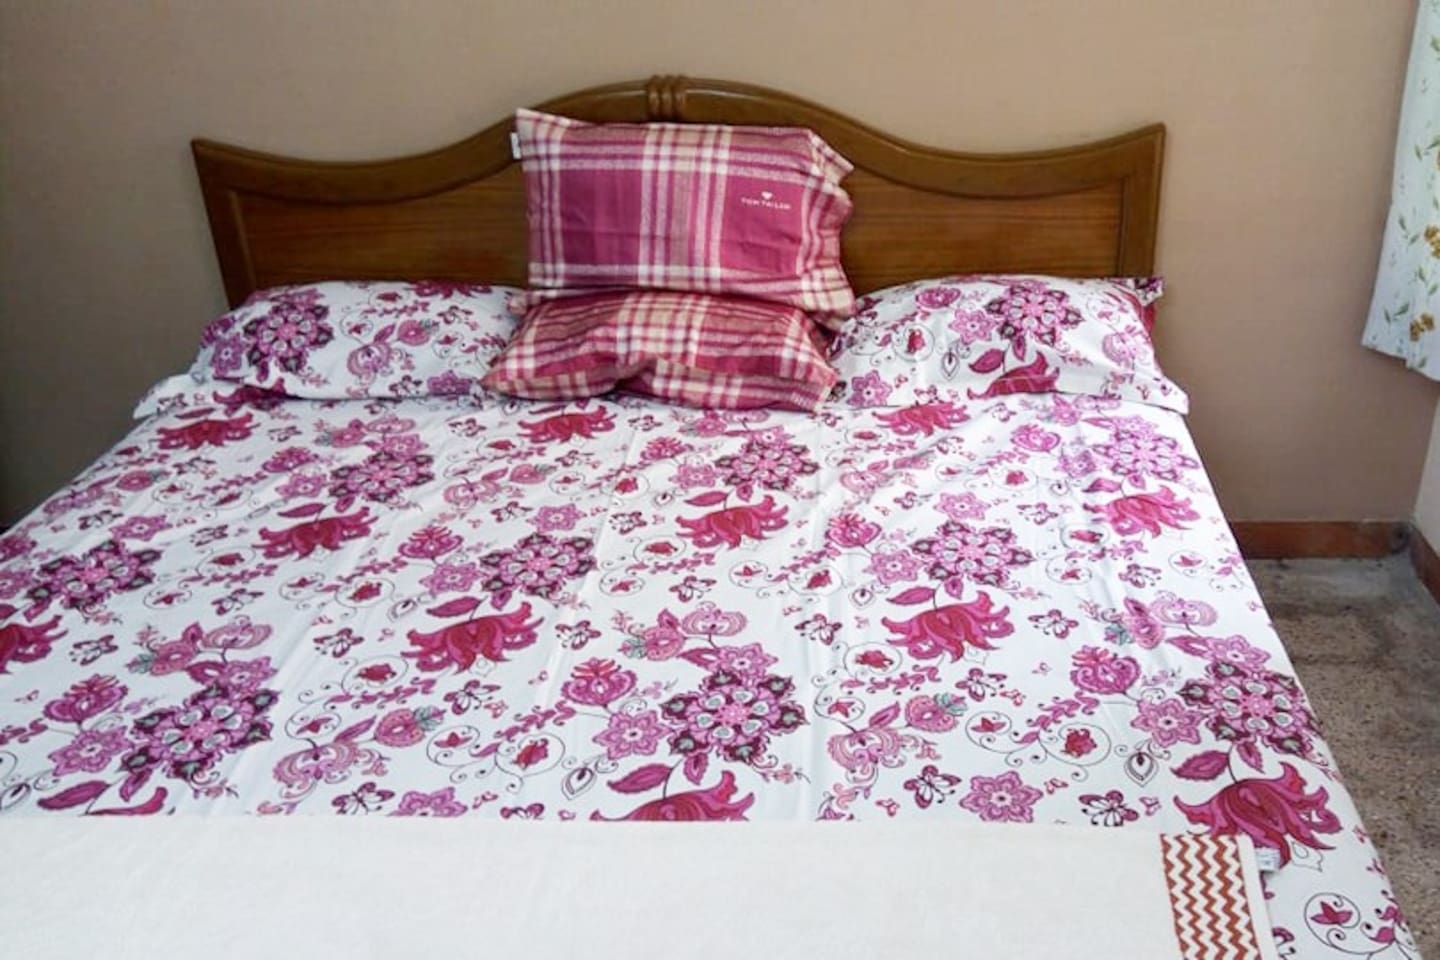 Elegant and beautiful floral bedspreads to enhance your mood.